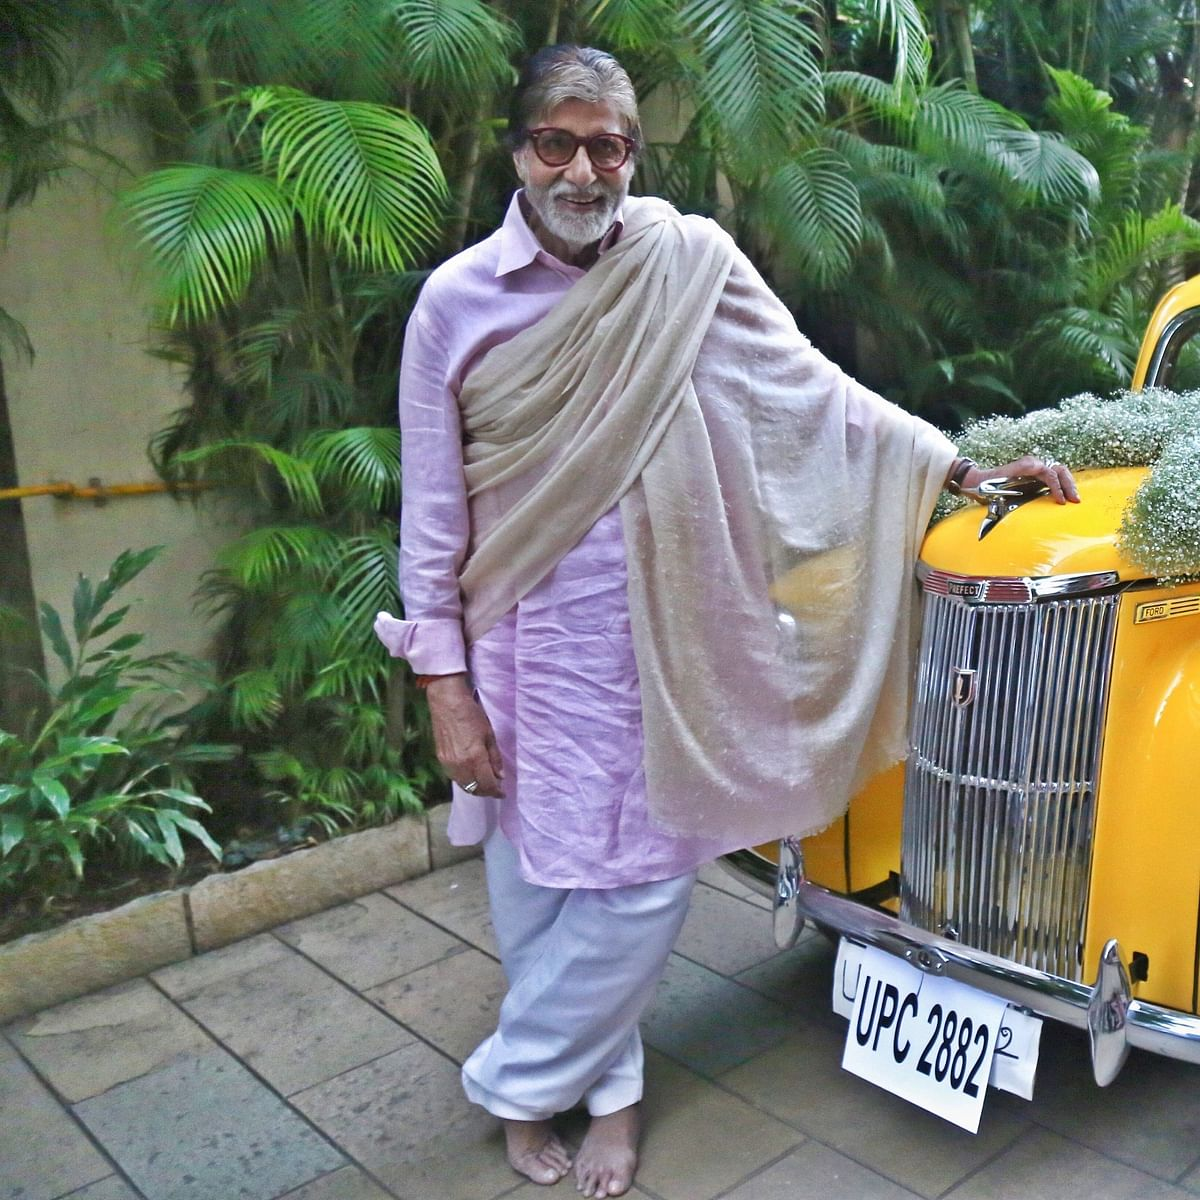 Amitabh Bachchan is 'speechless' as he shares a frame with his vintage car